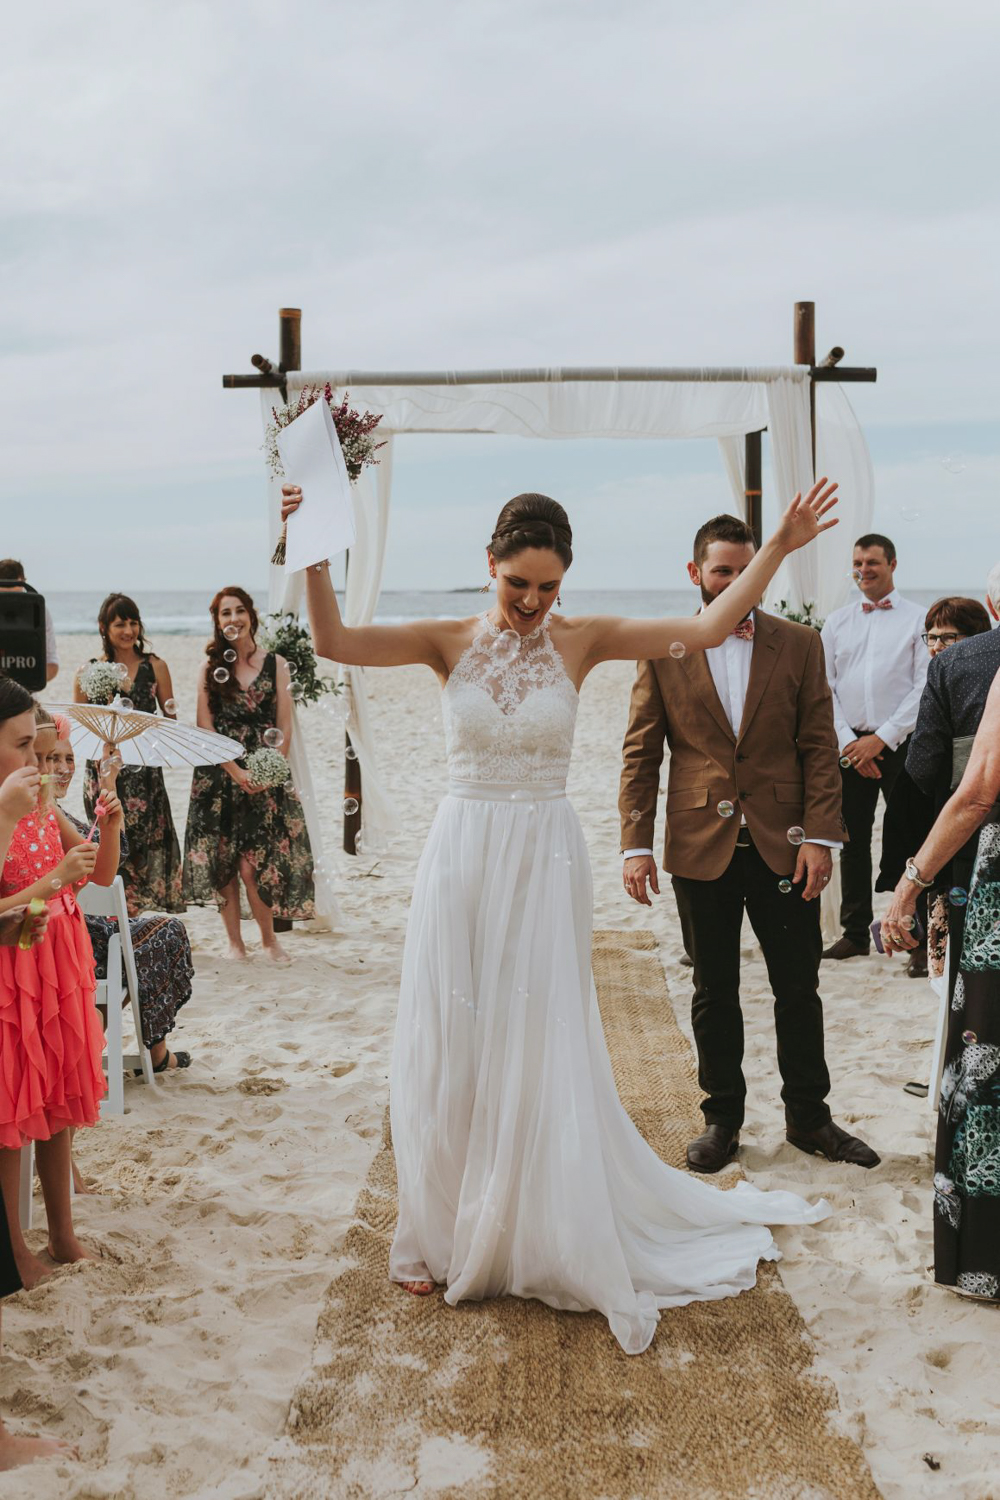 Bride celebrates marrying her husband at a beach wedding in Queensland